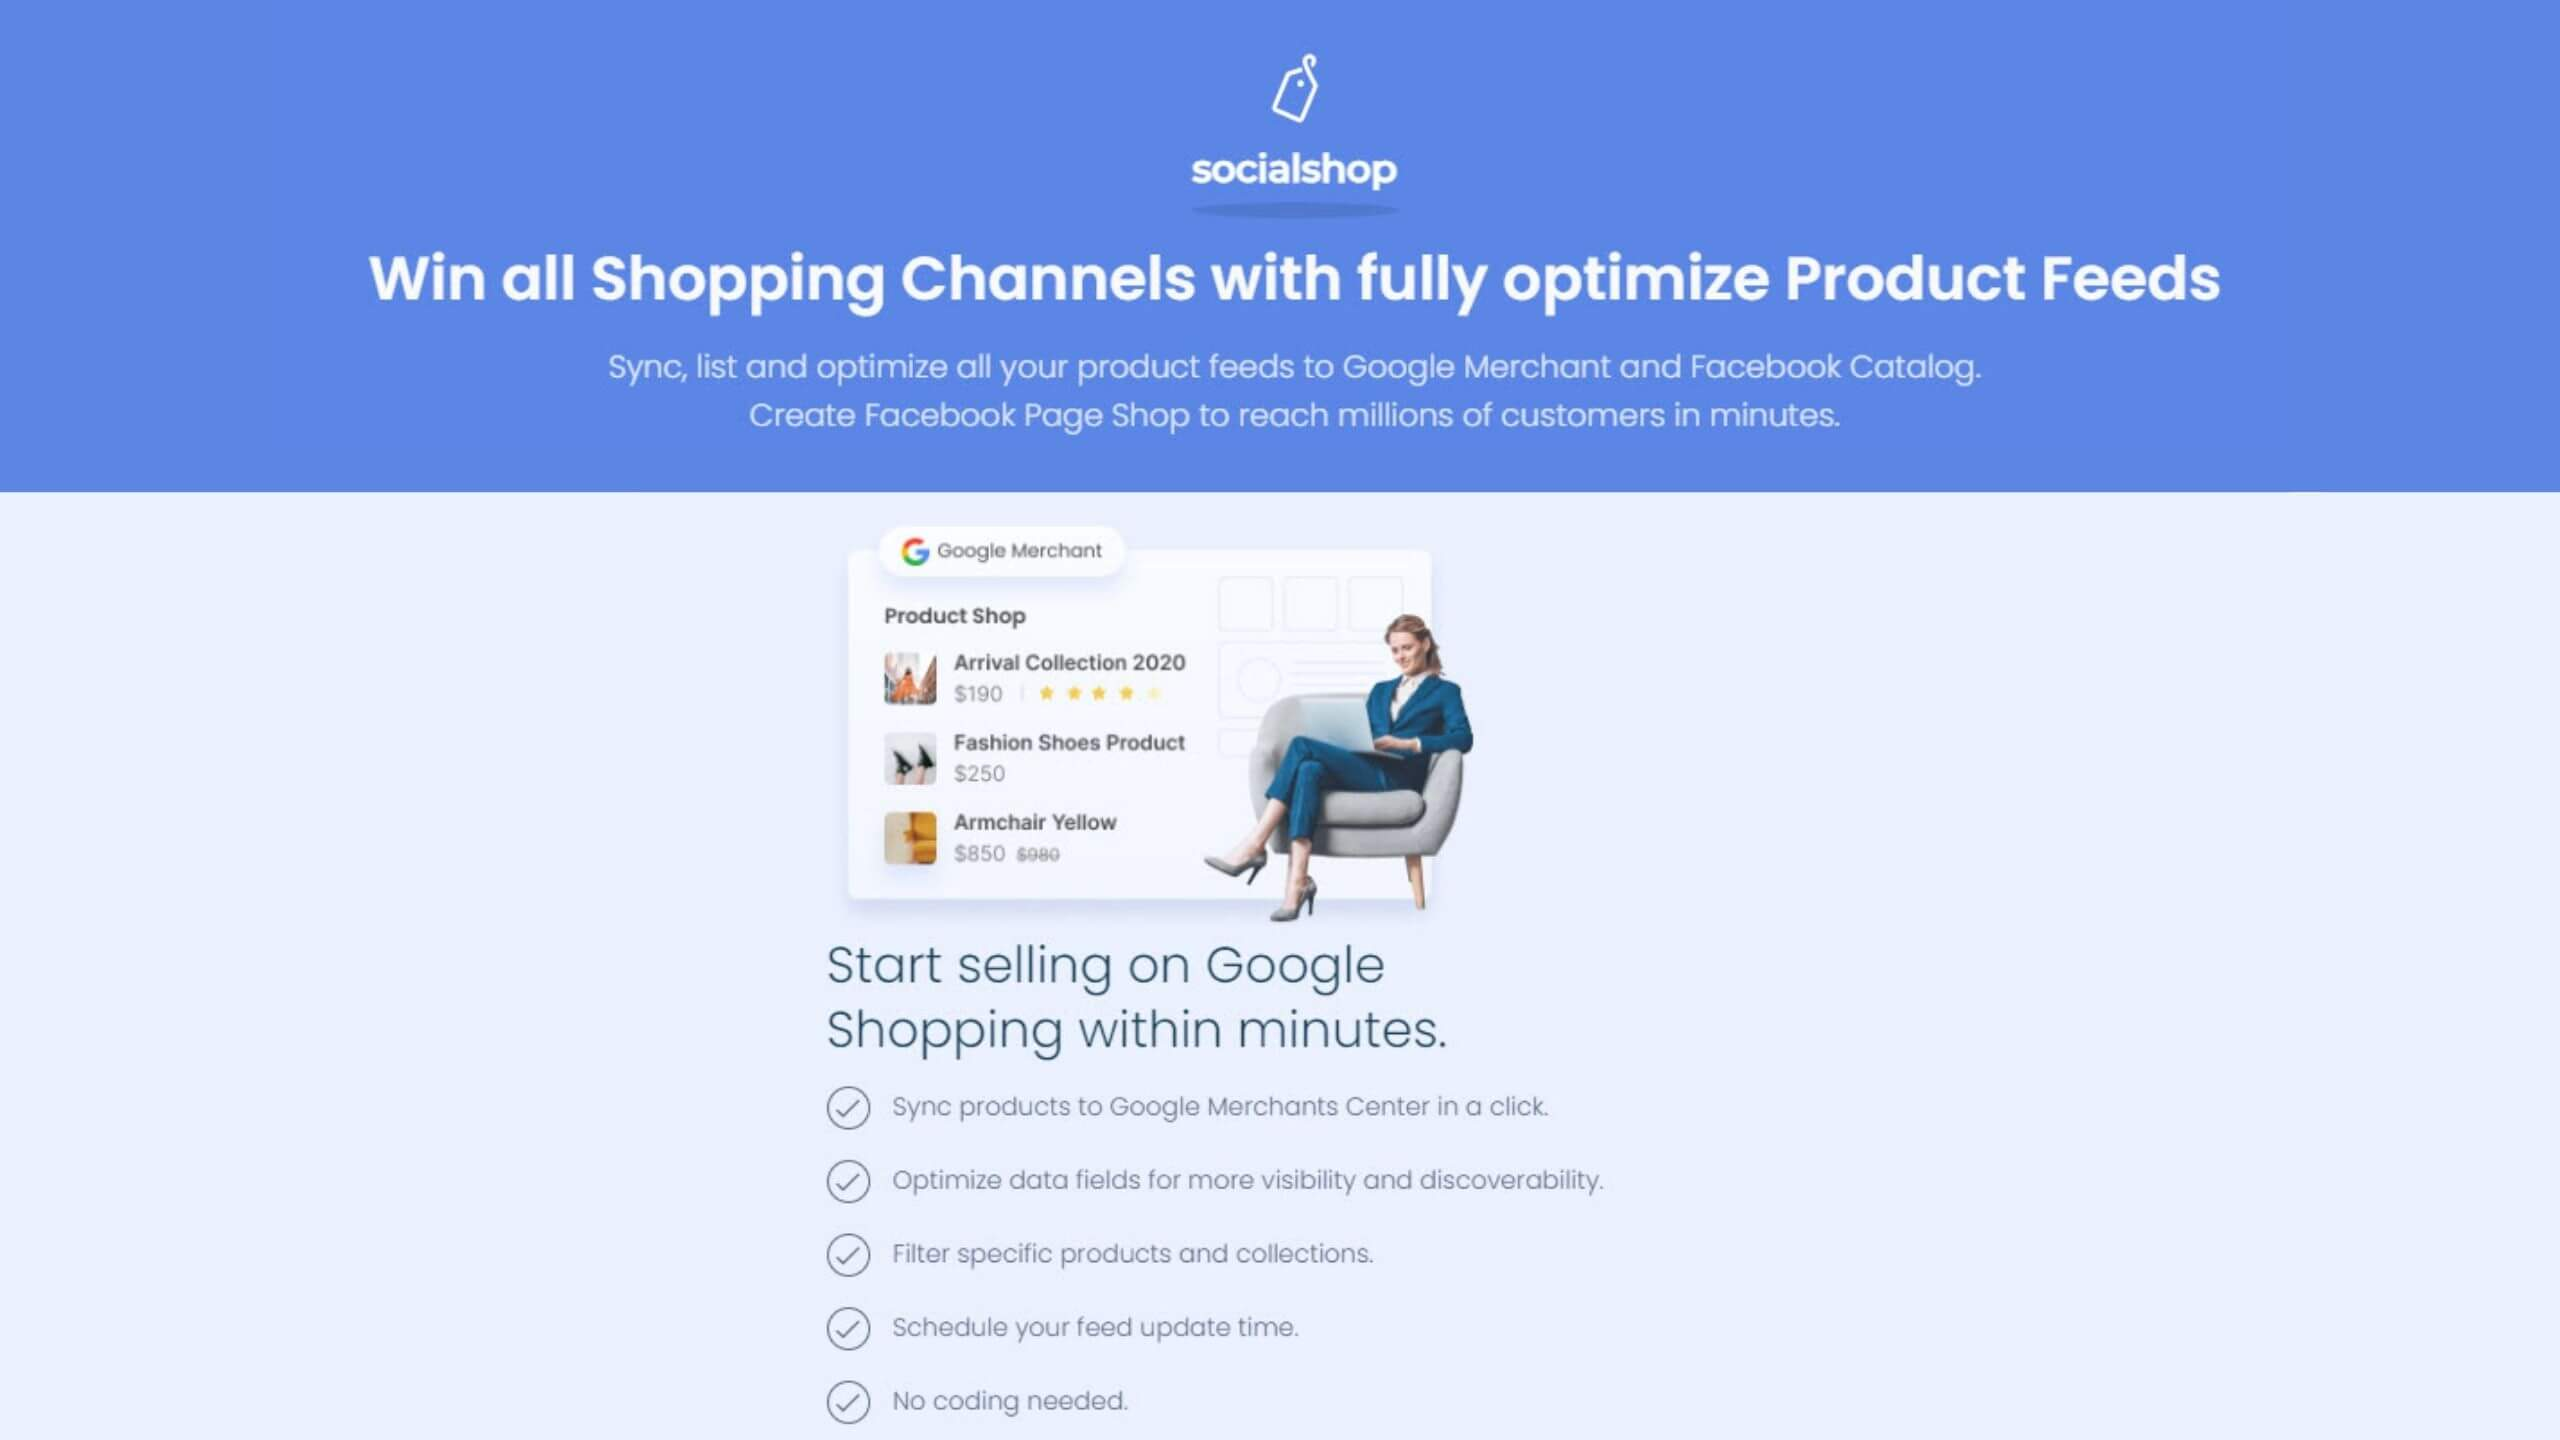 Socialshop support you create and sync products to Google Merchant Center from Shopify, WooCommerce, and BigCommerce